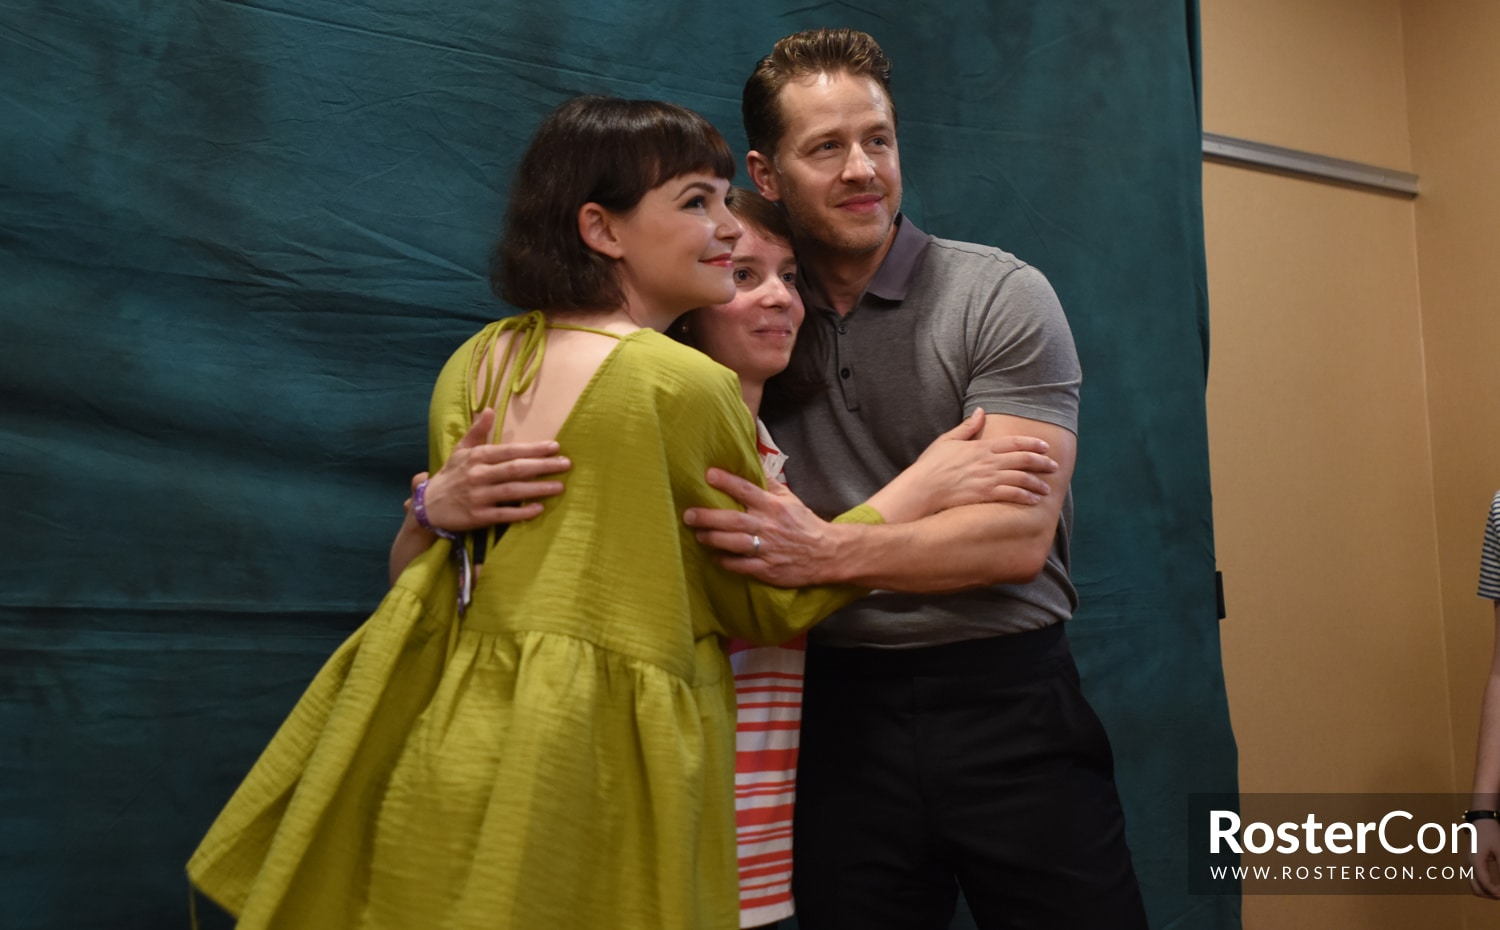 Ginnifer Goodwin & Josh Dallas - The Happy Ending Convention 3 - Once Upon A Time